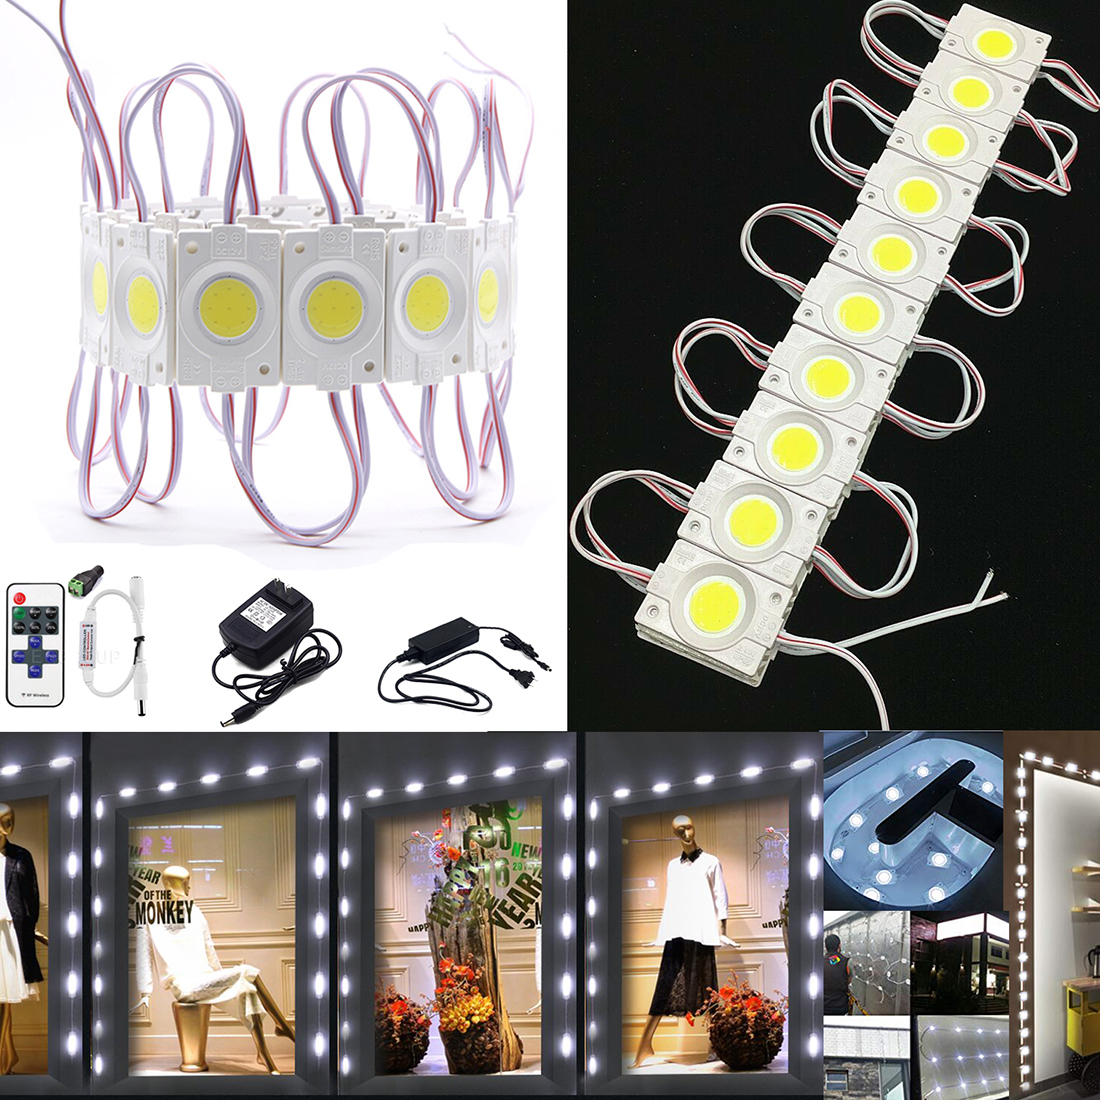 70 FT 5050 3 Storefront Window Super Bright White LED Lights SMD Module FULL SET